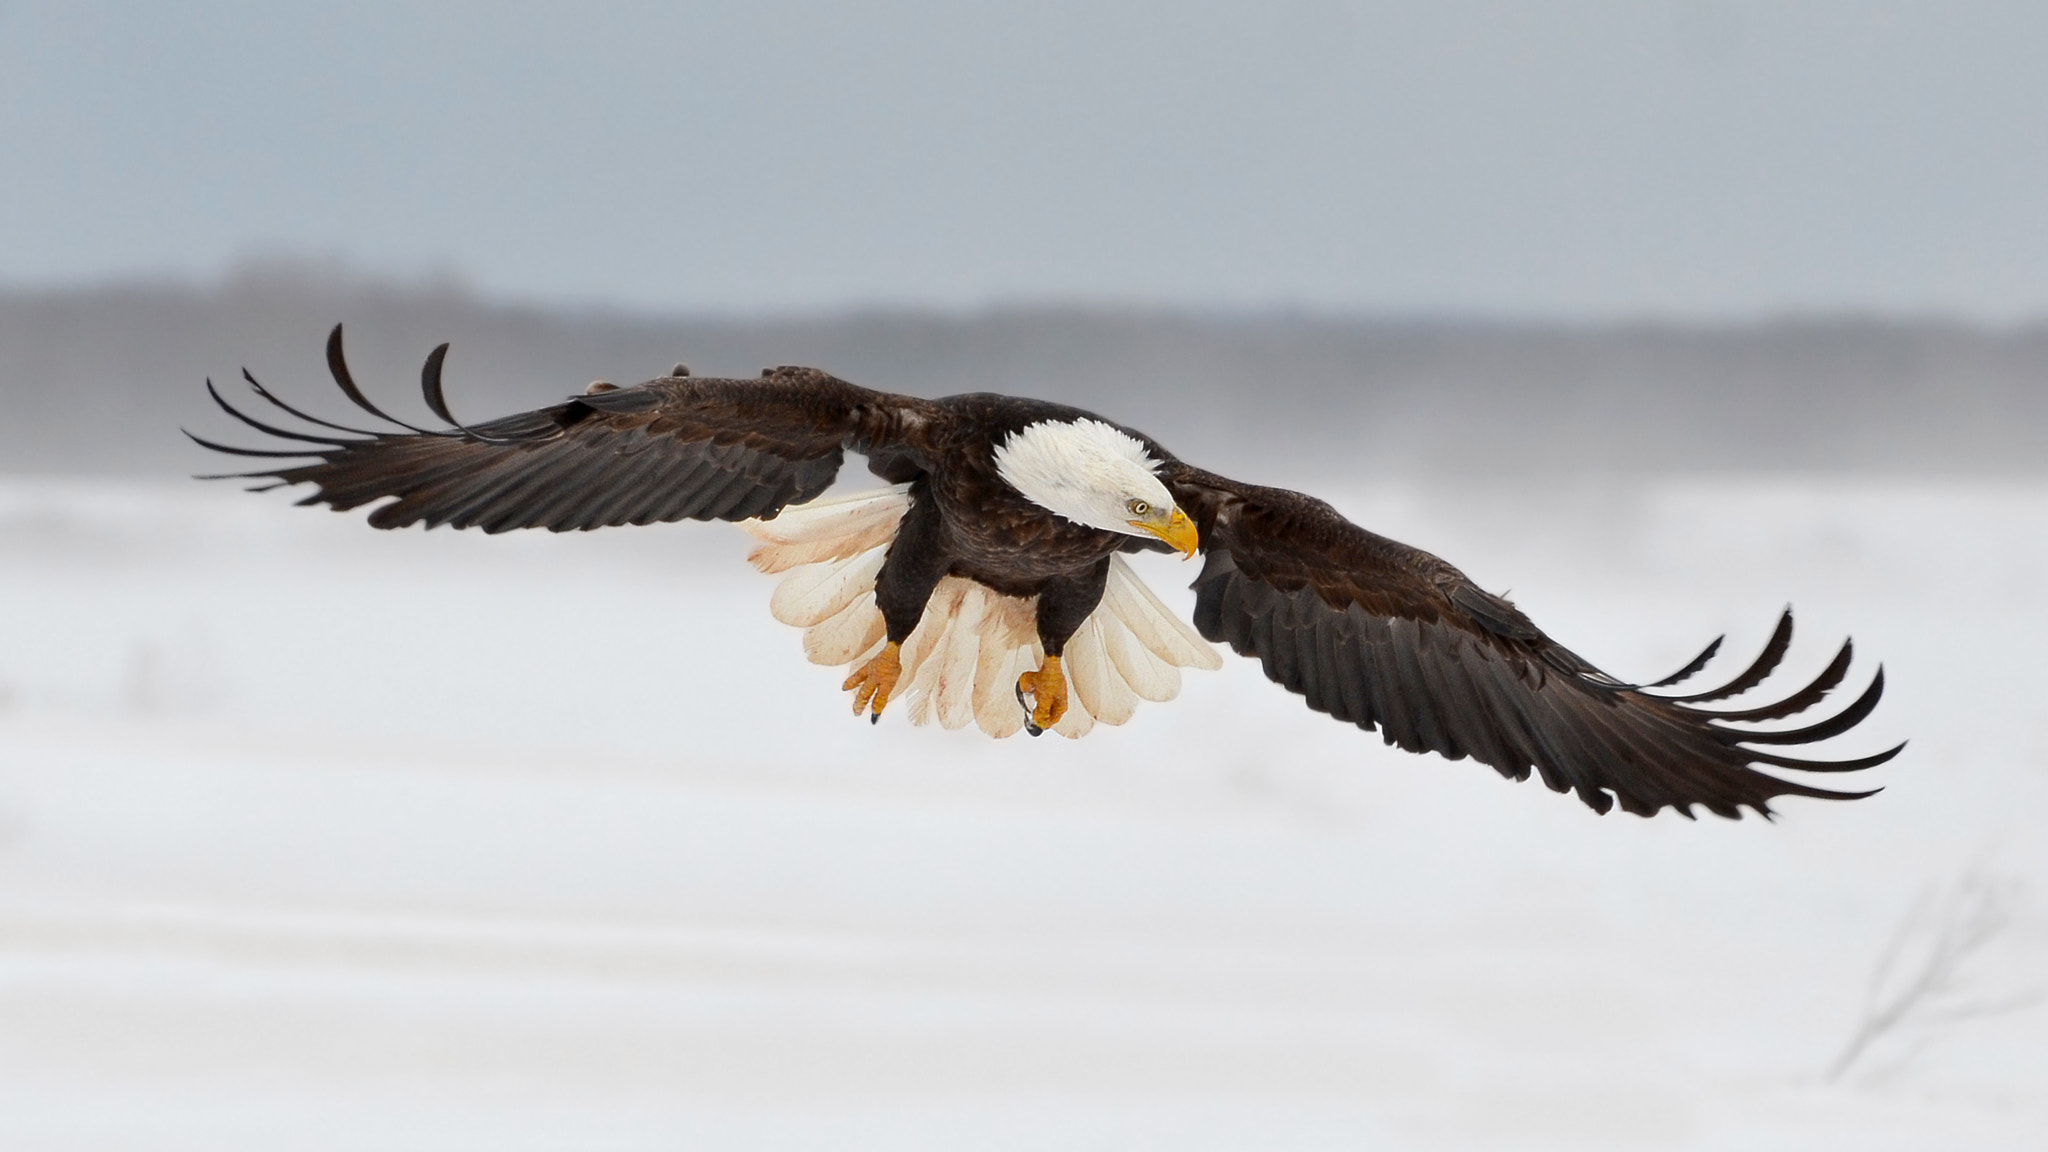 Photograph Winter's Warrior by Peter Brannon on 500px